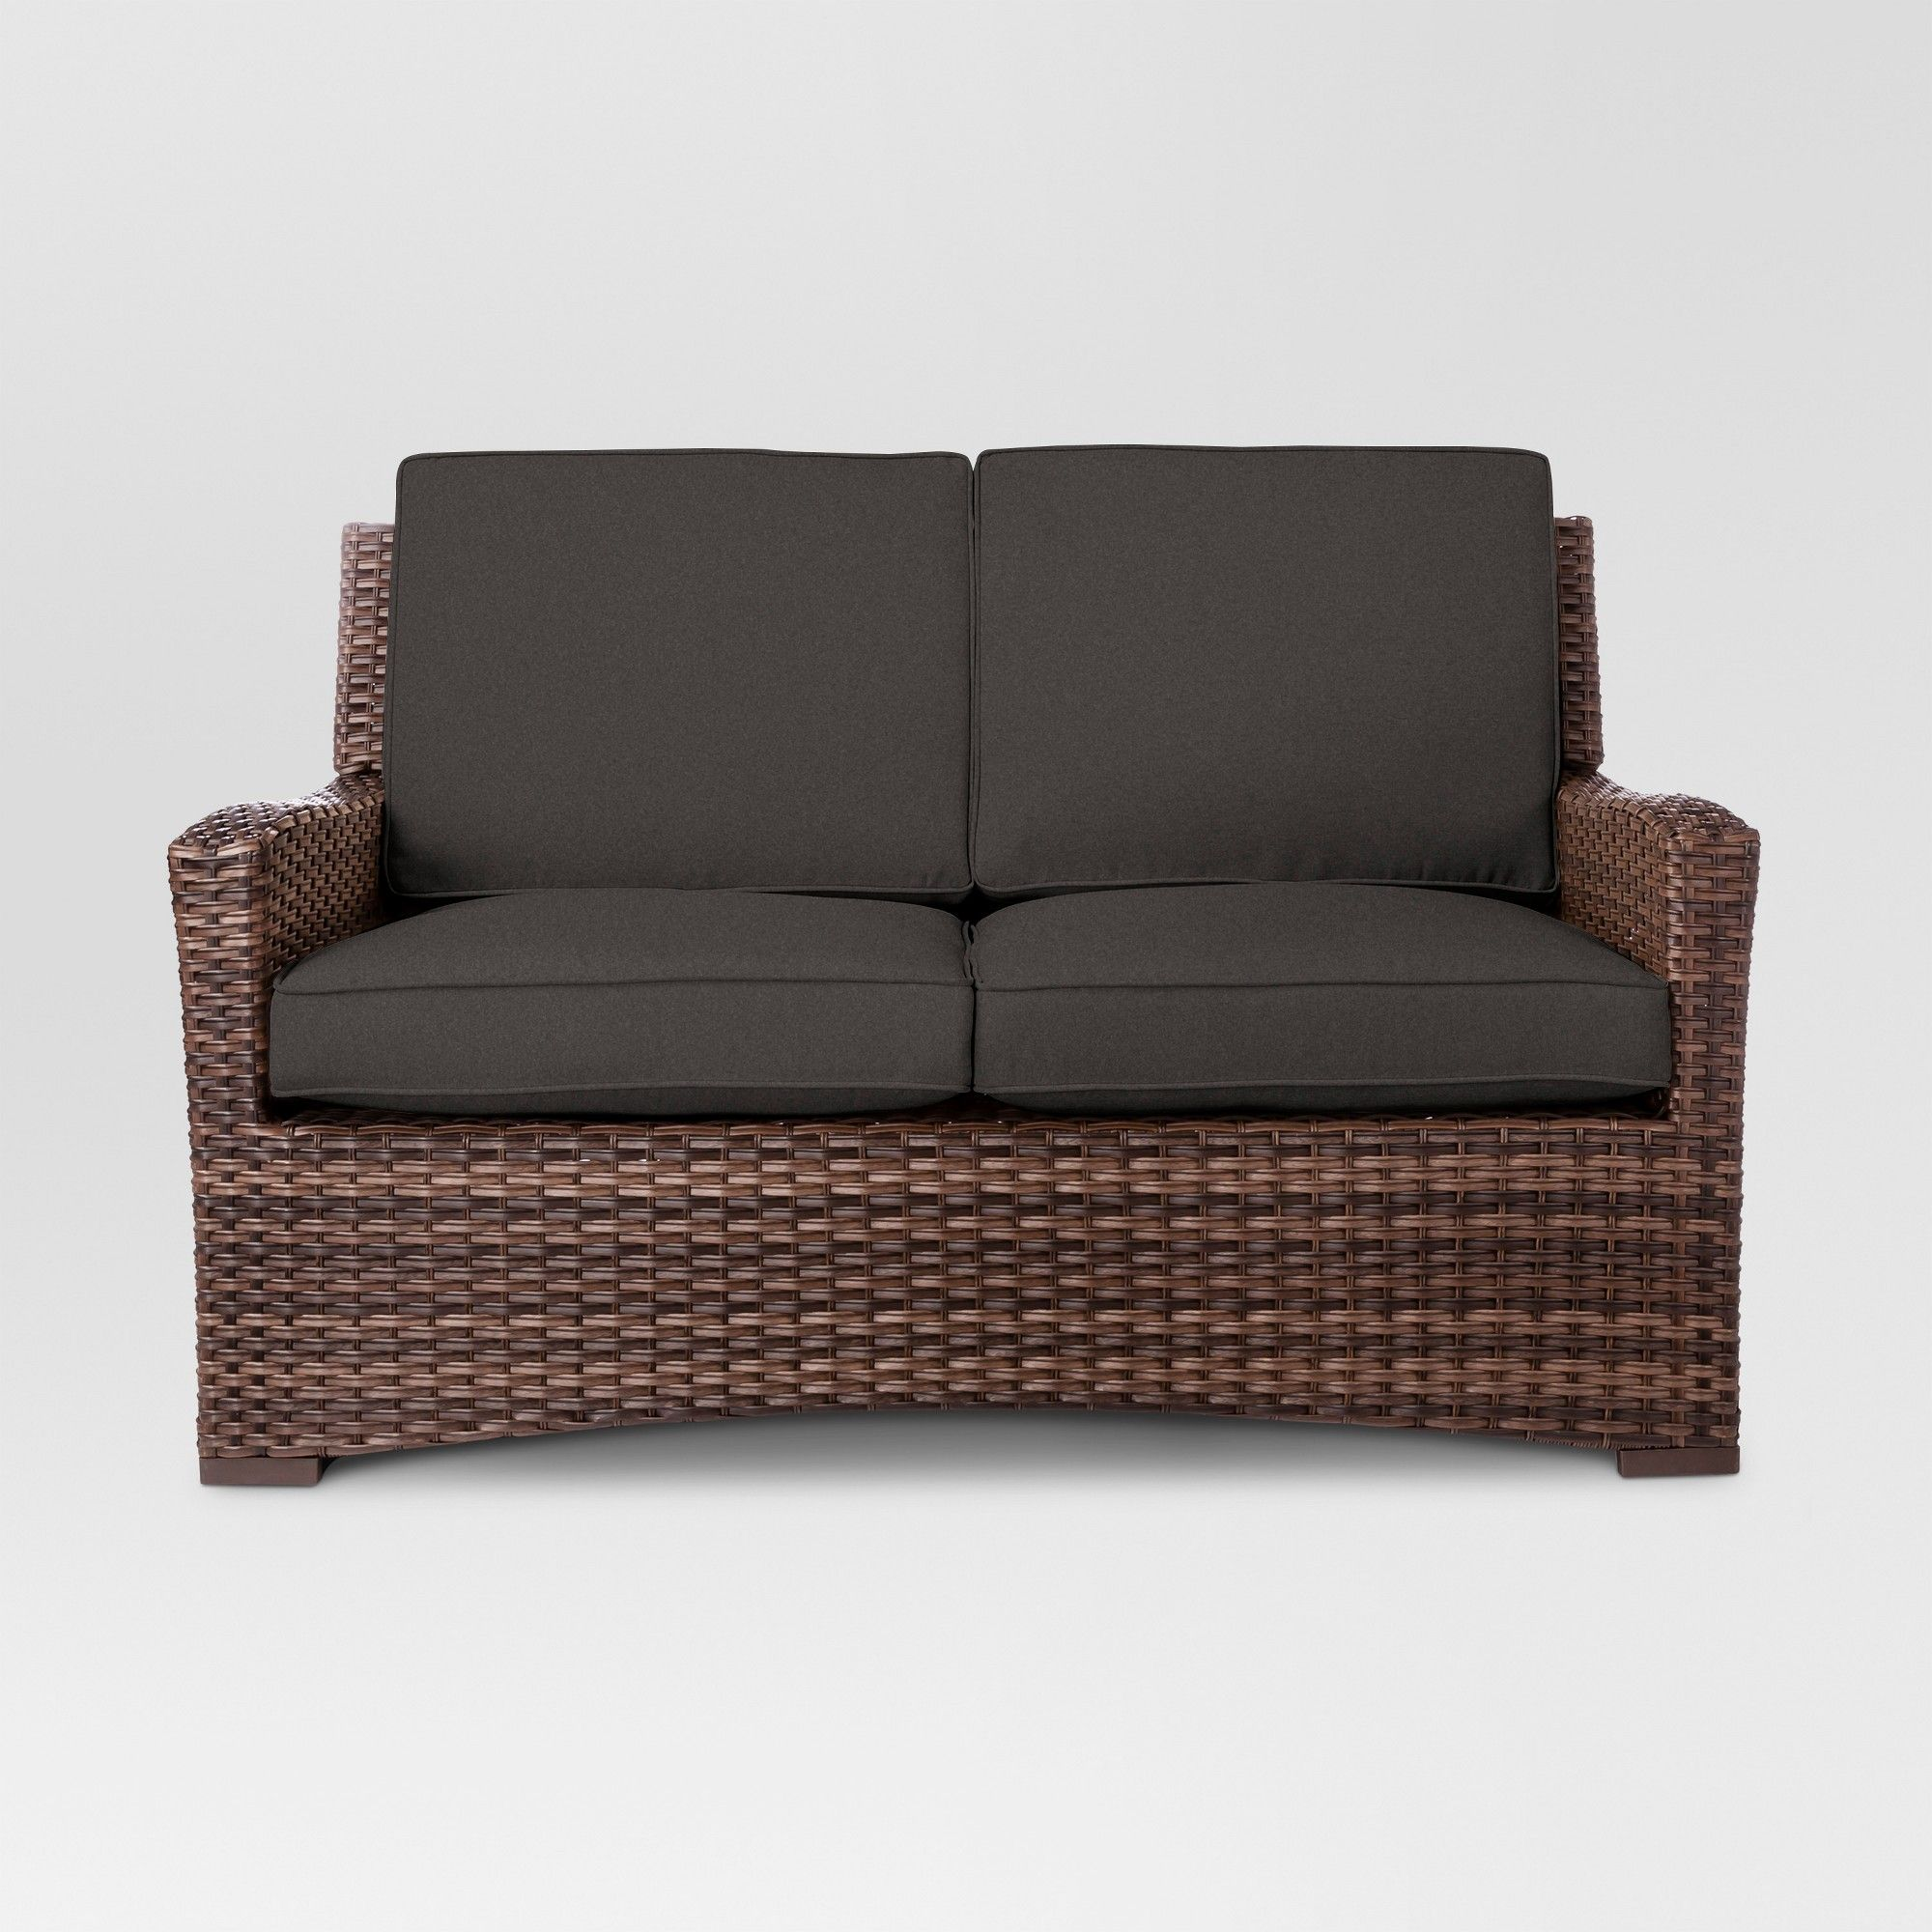 Halsted wicker patio loveseat charcoal threshold grey